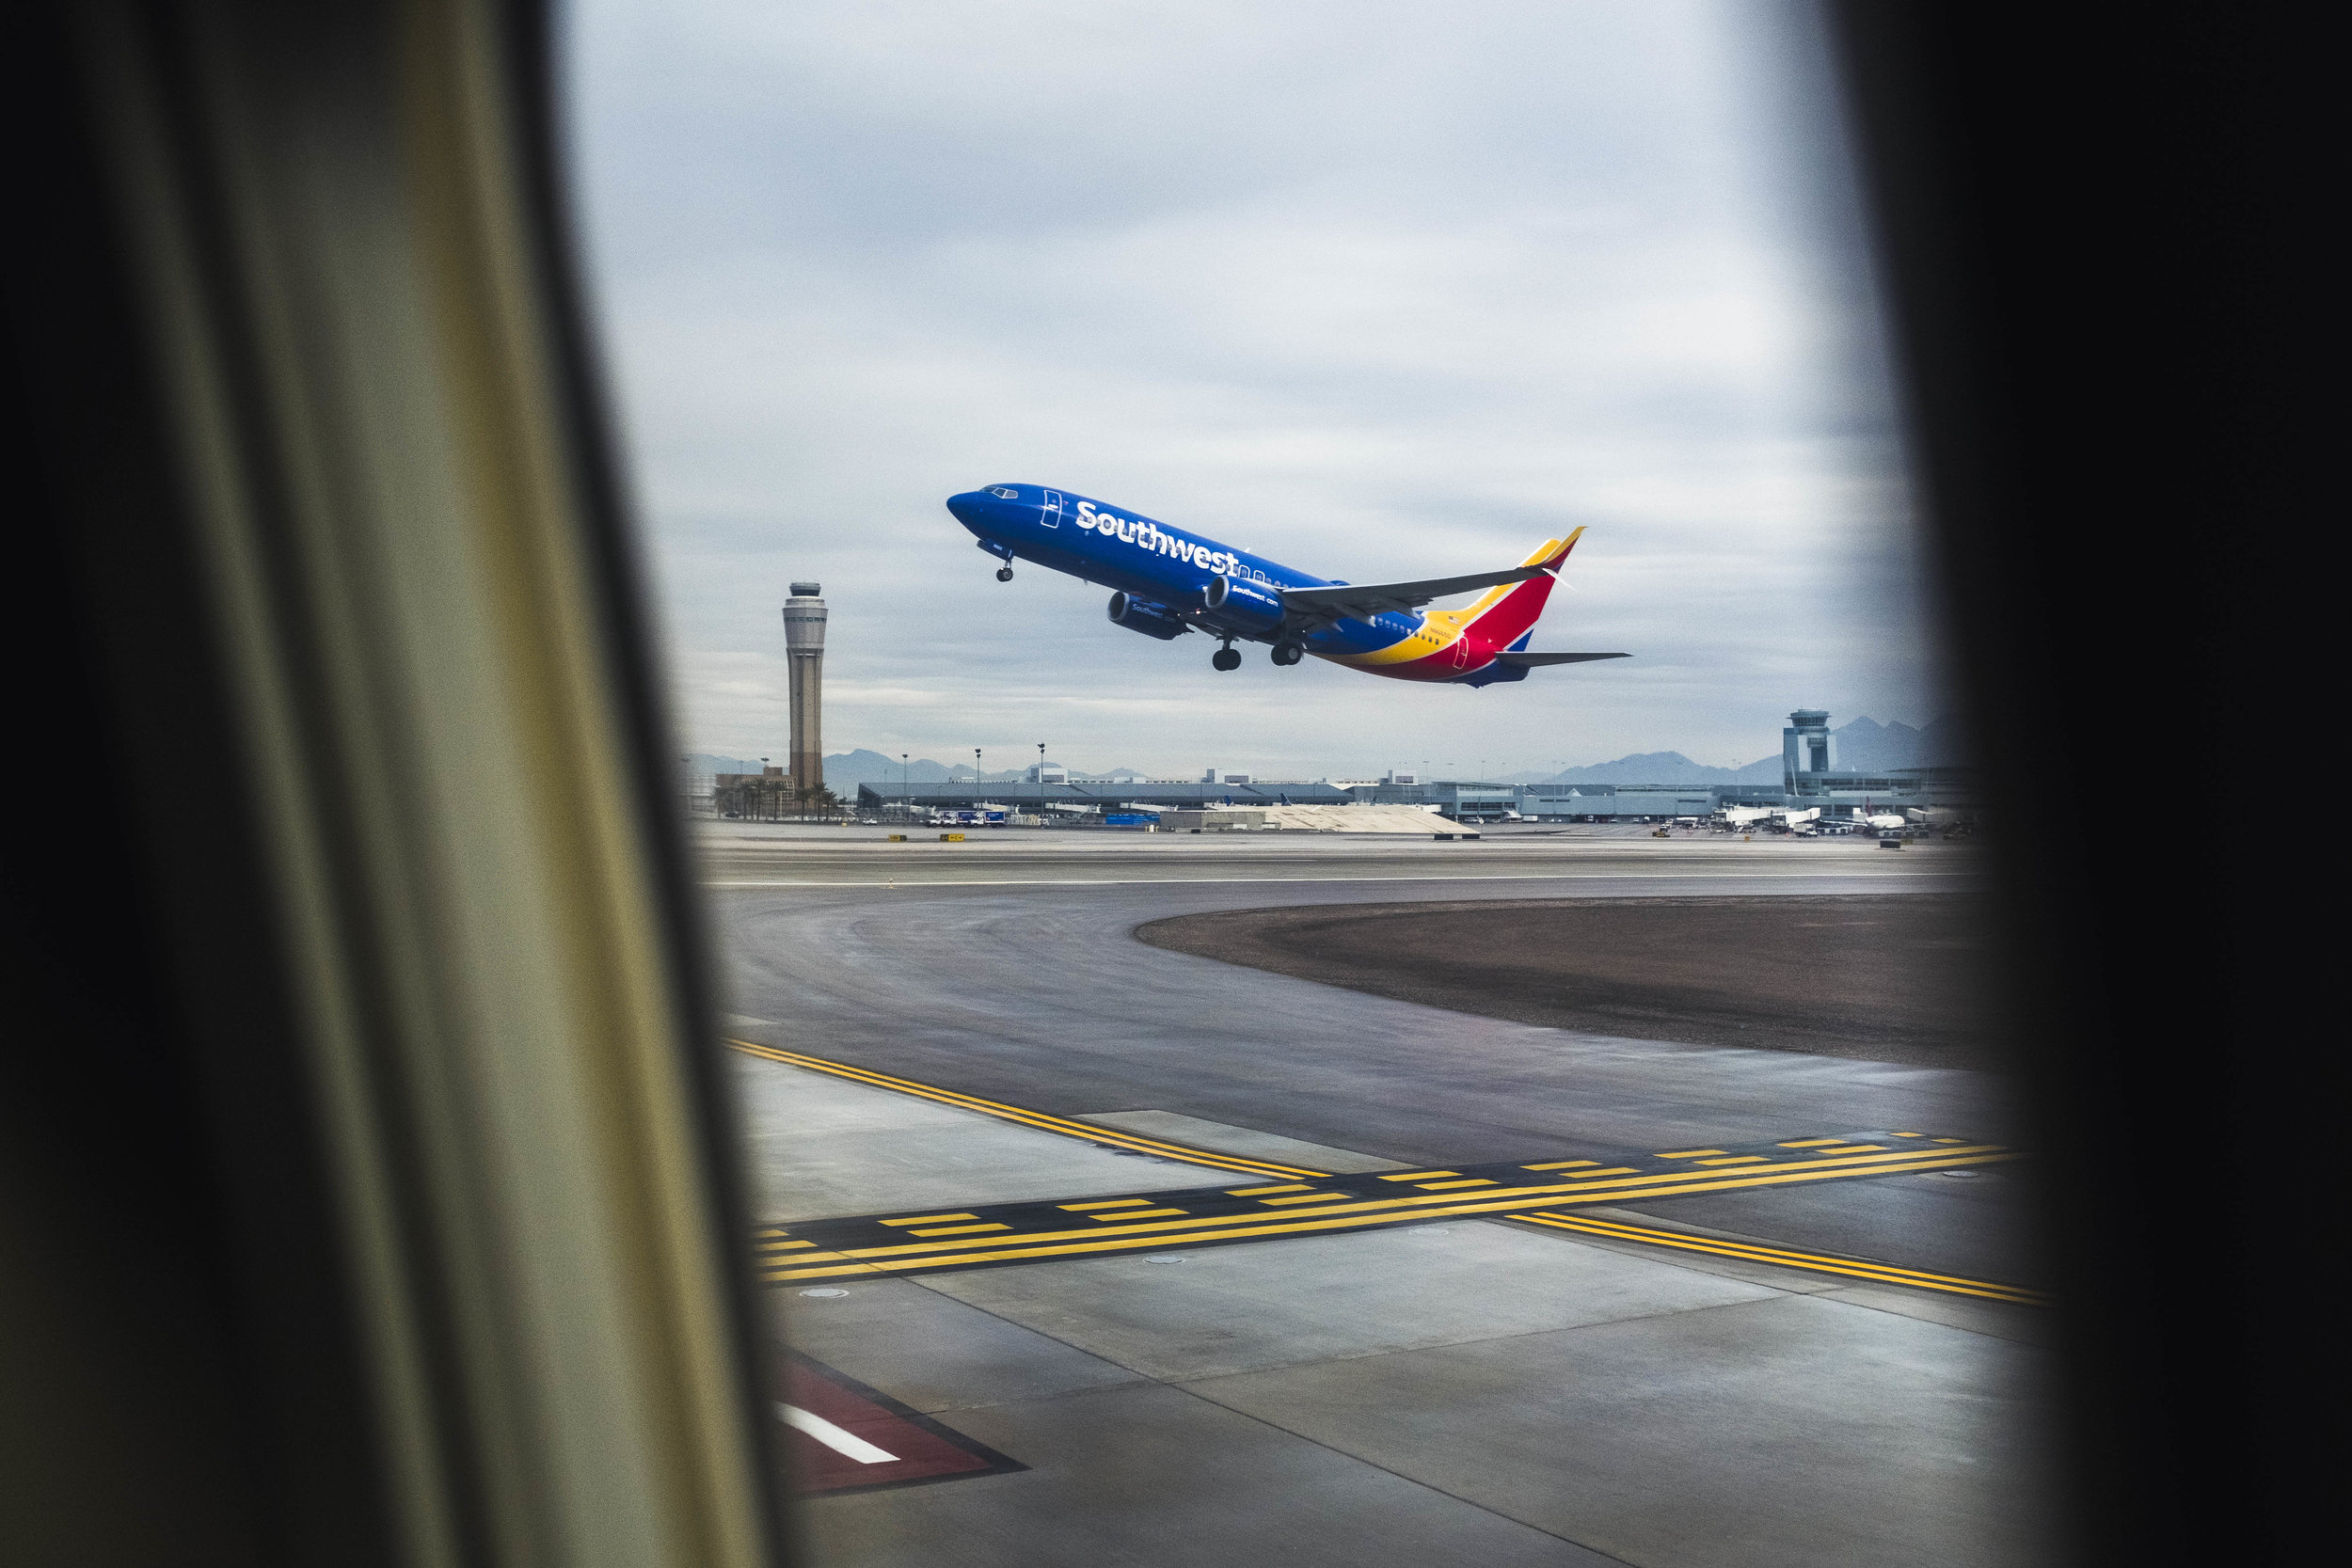 20181207 Southwest Airlines Las Vegas Take Off.jpg